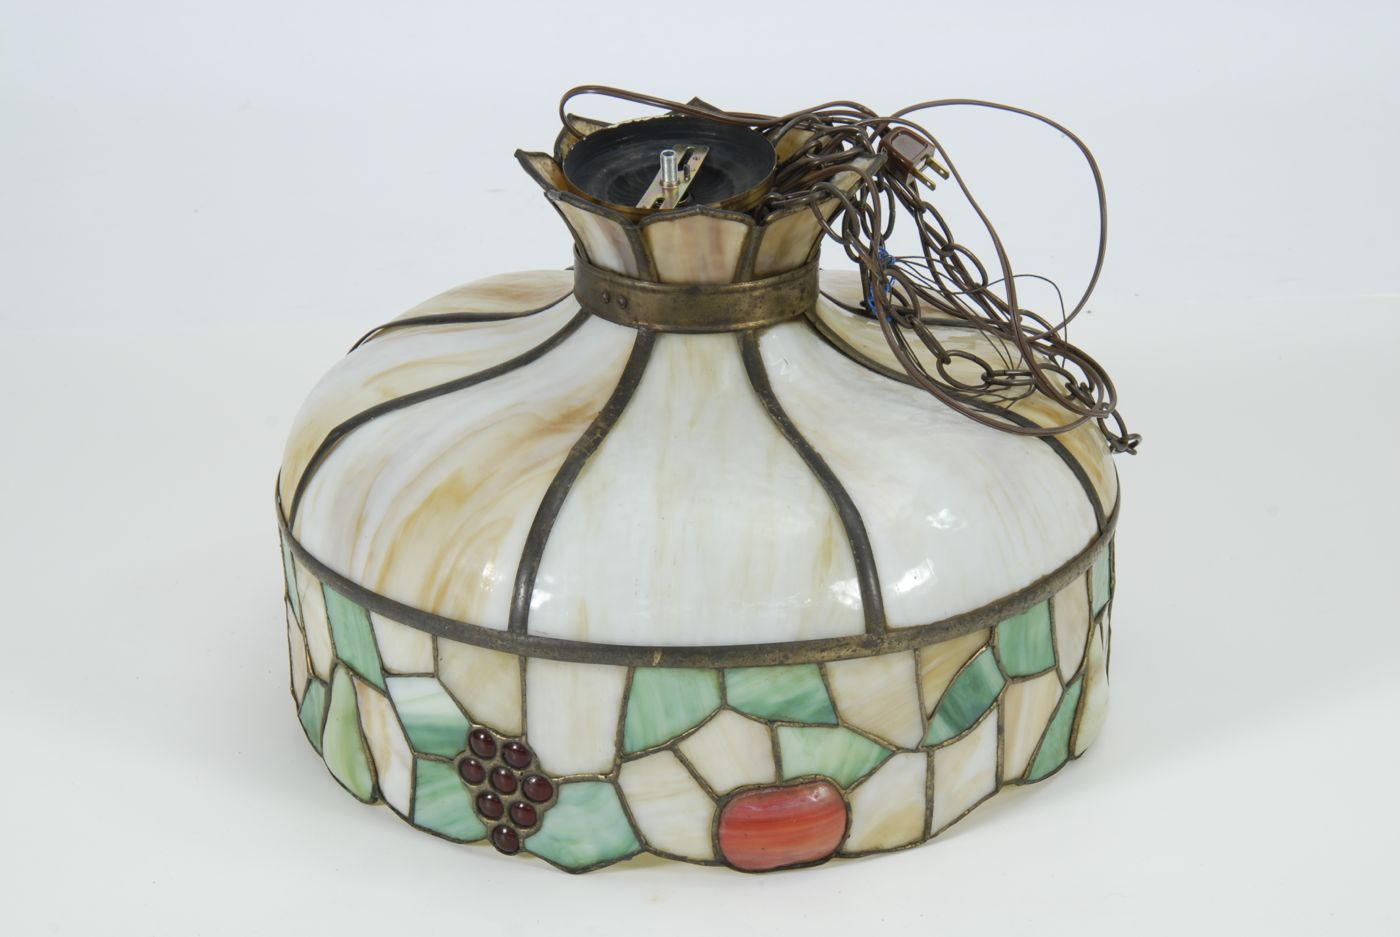 ART NOUVEAU HANGING LAMP with curved caramel